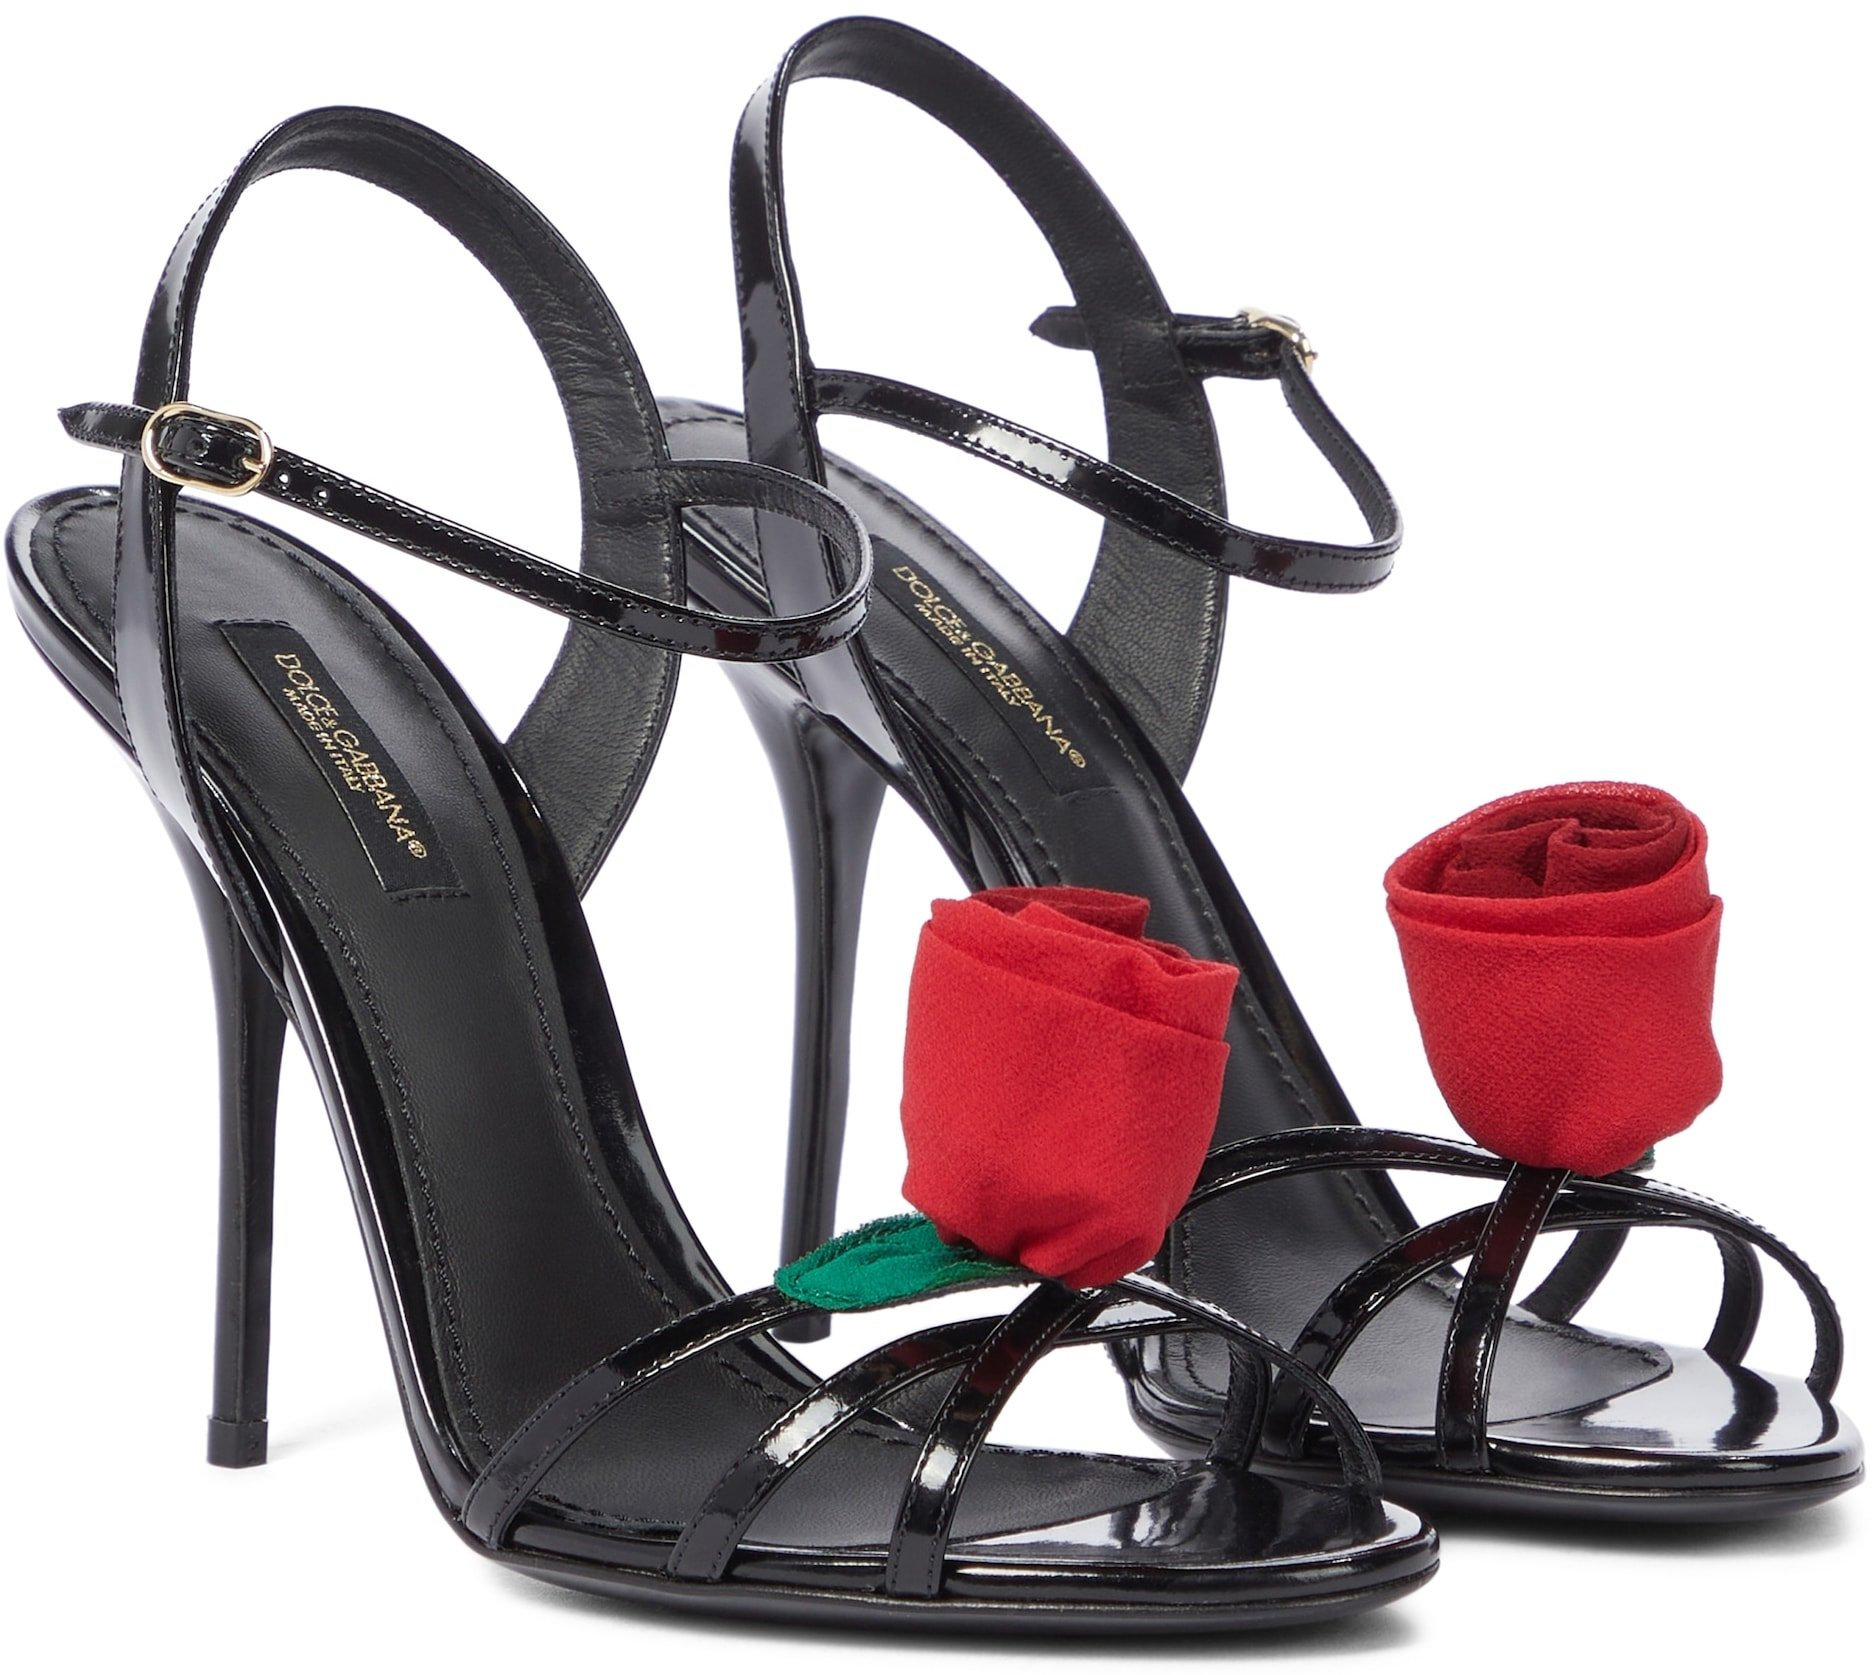 These black Keira sandals from Dolce & Gabbana are trimmed with rose embellishments for a touch of romance